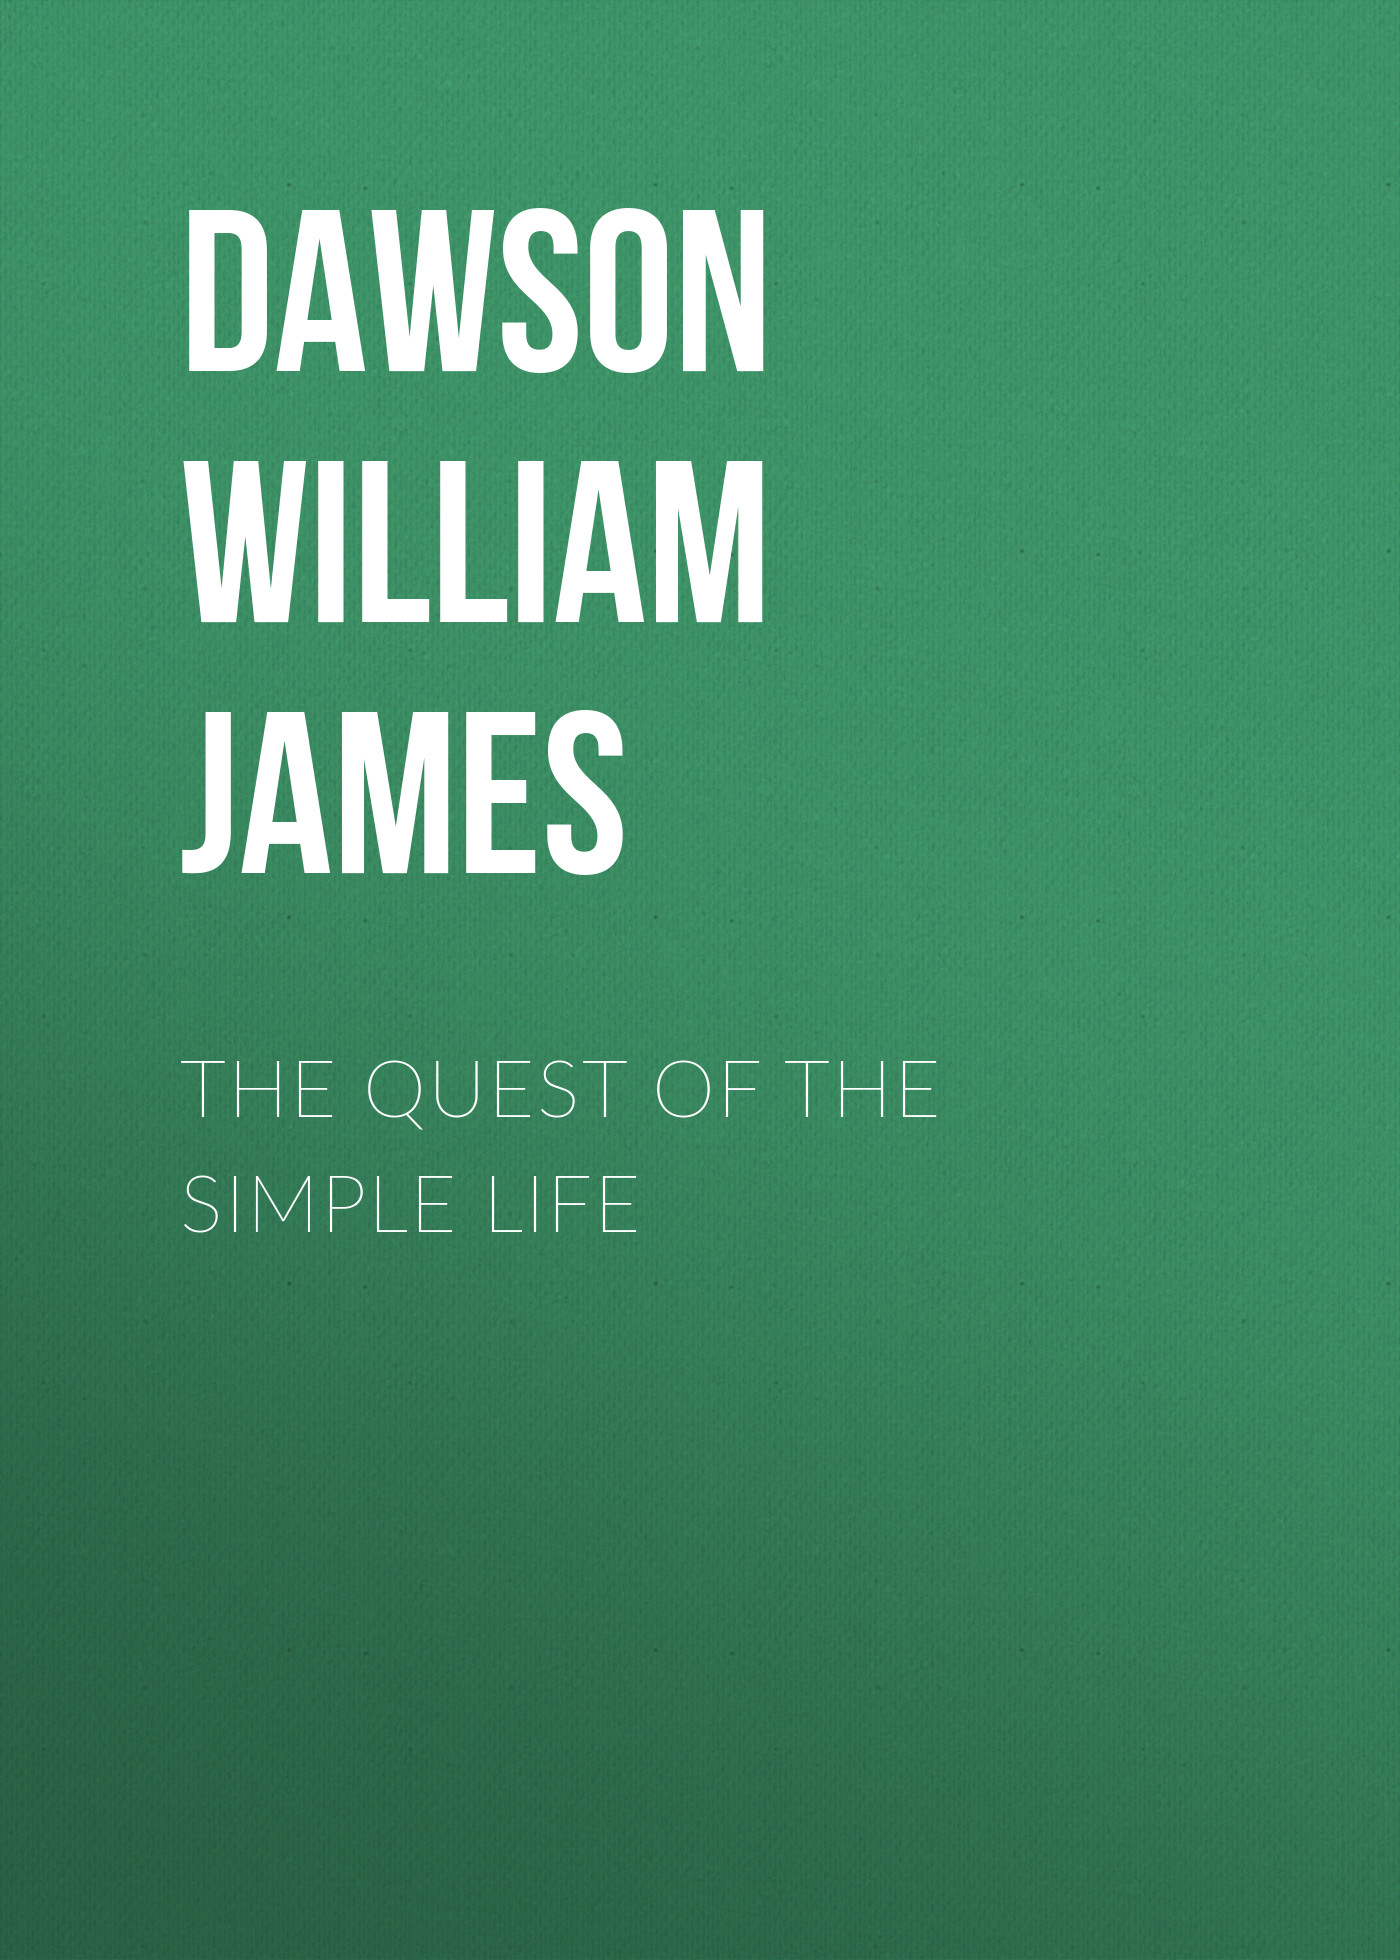 Dawson William James The Quest of the Simple Life william james the letters of william james vol 2